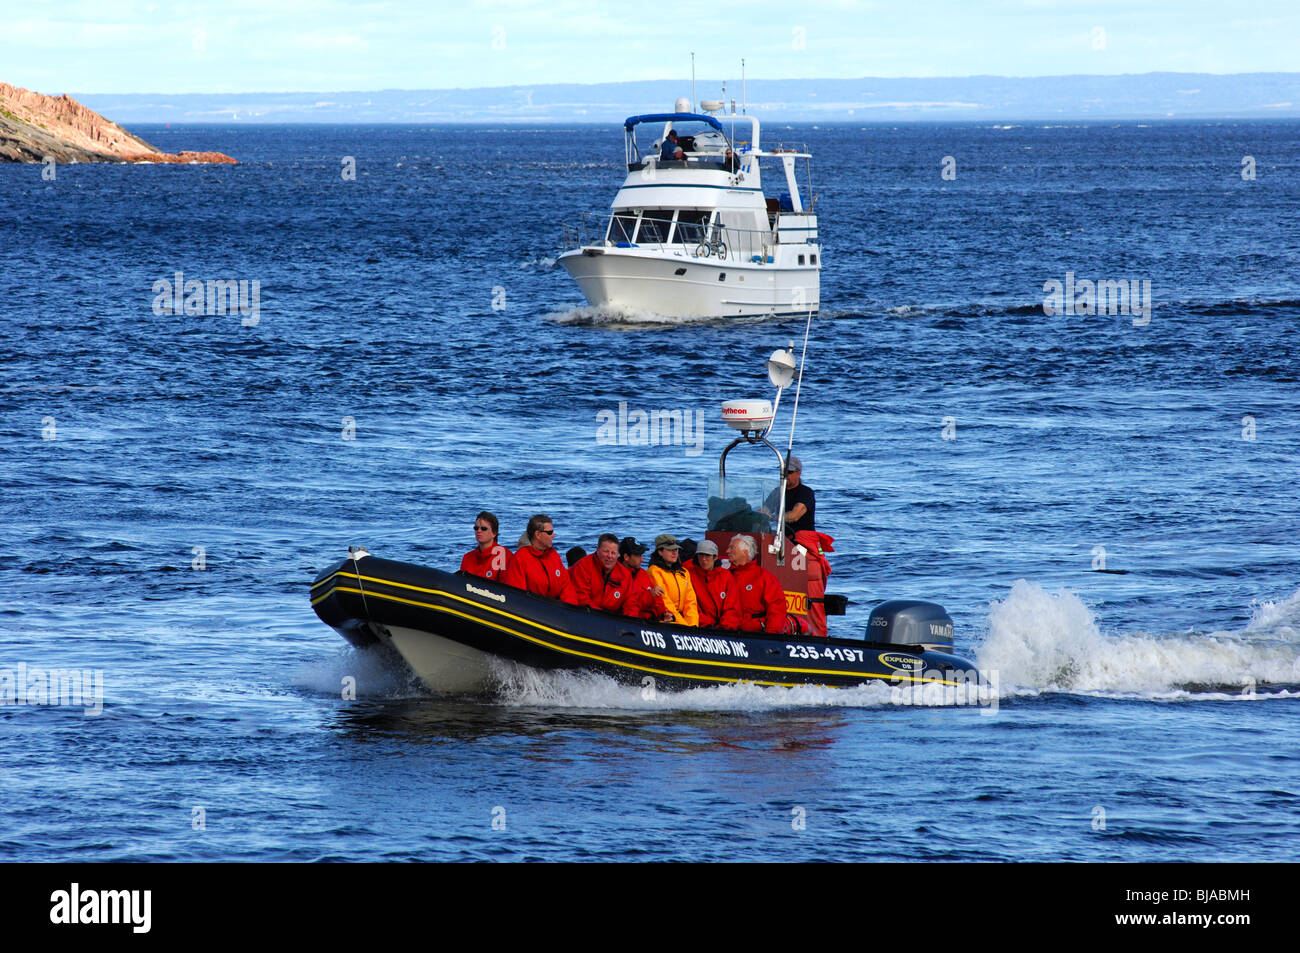 Tourists in a Zodiac dinghy on a whale watching excursion on the St. Lawrence River, Tadoussac, Canada - Stock Image